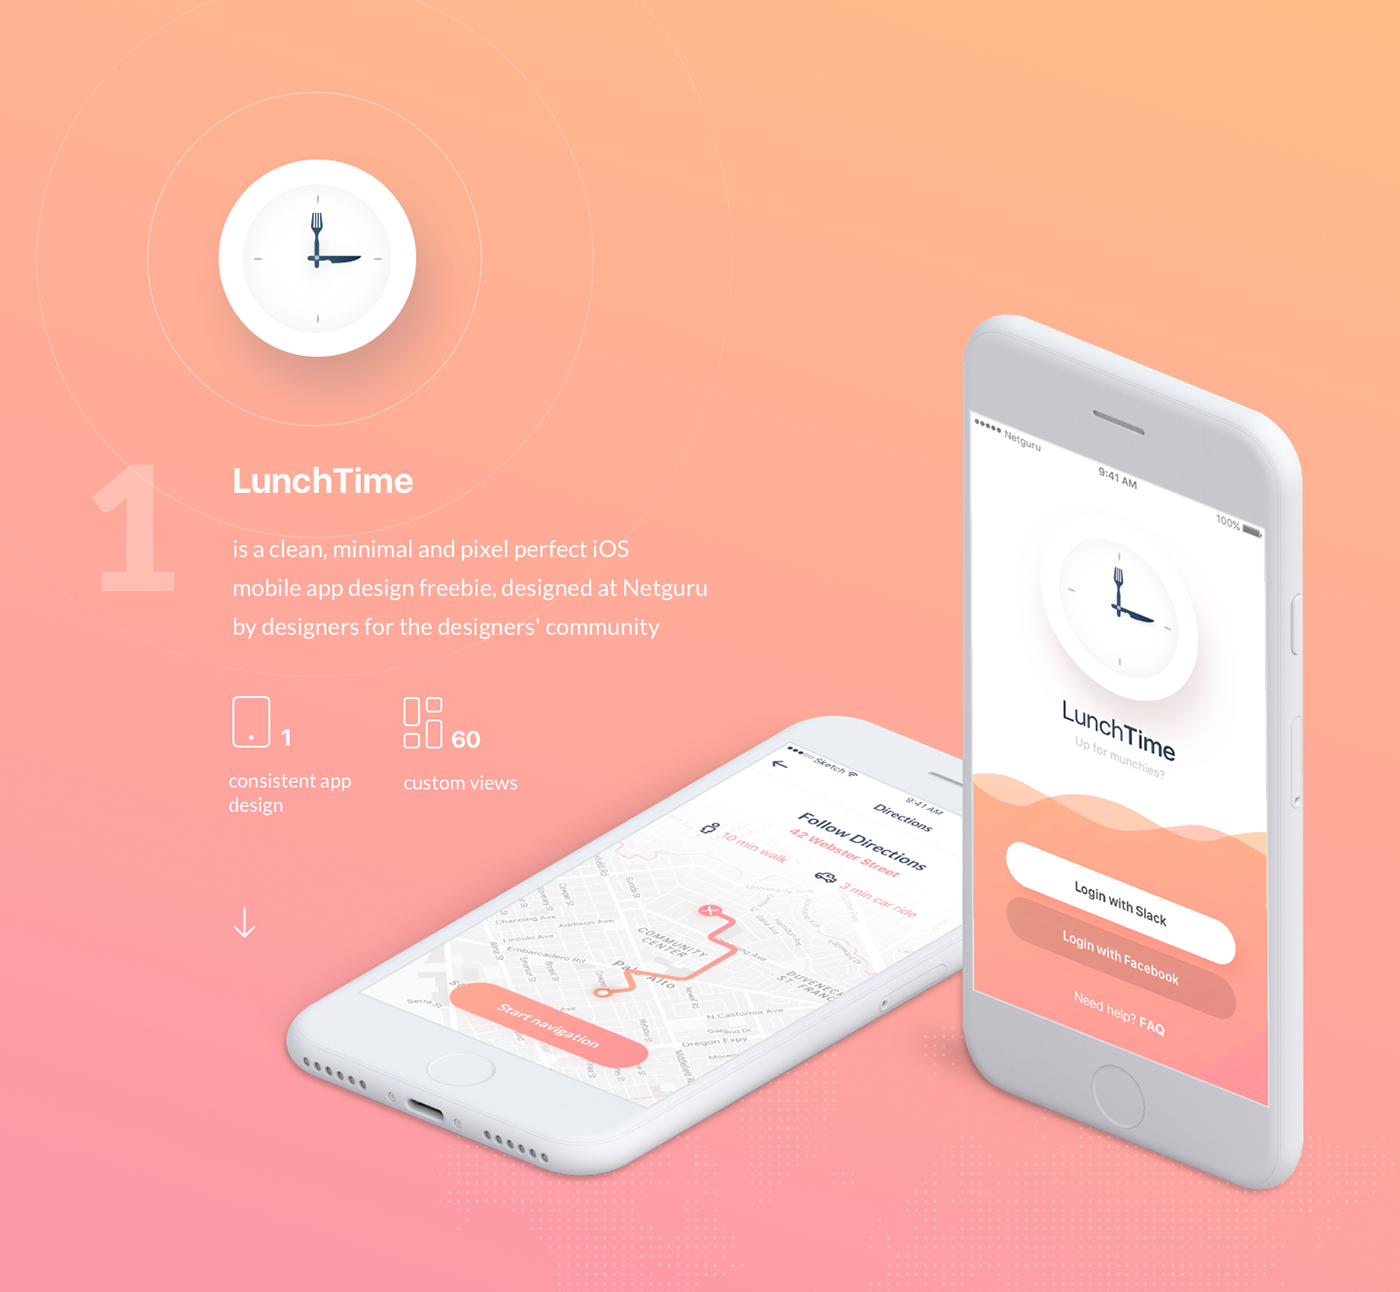 Lunchtime Mobile App Design Freebie On Behance